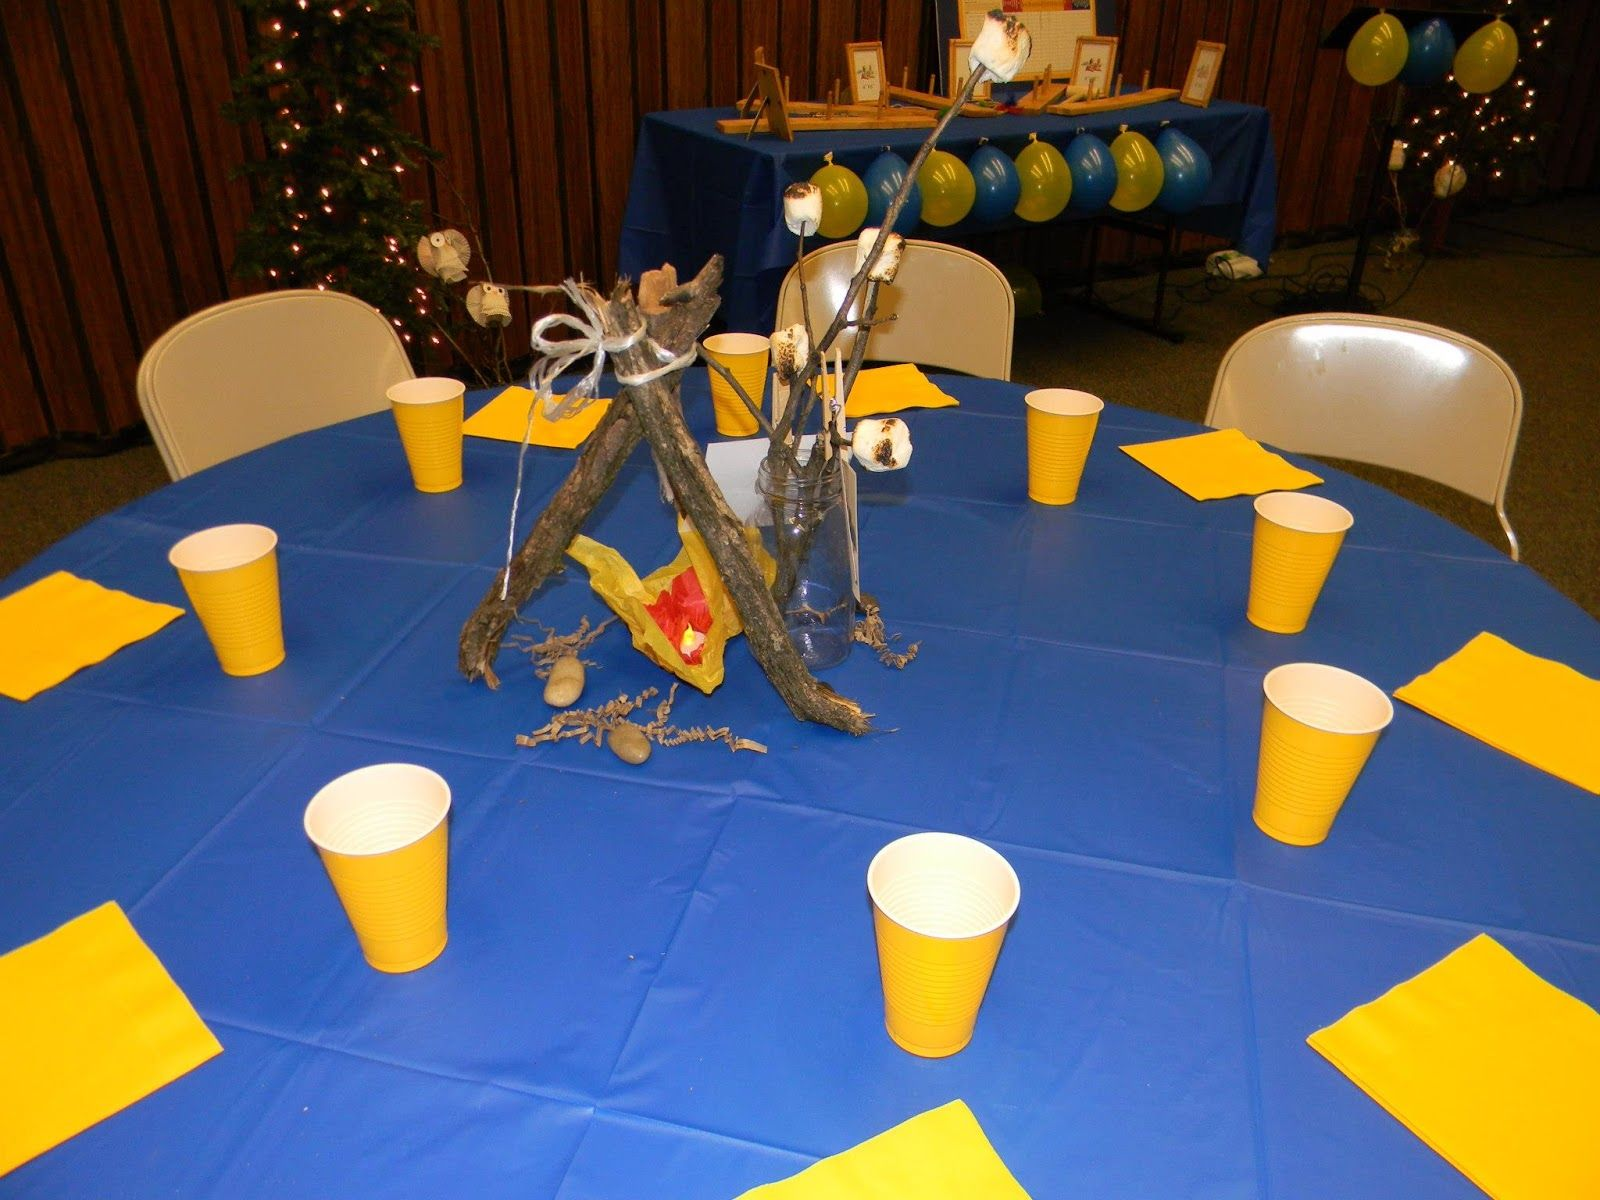 cub scout blue and gold banquet centerpieces | controlling craziness